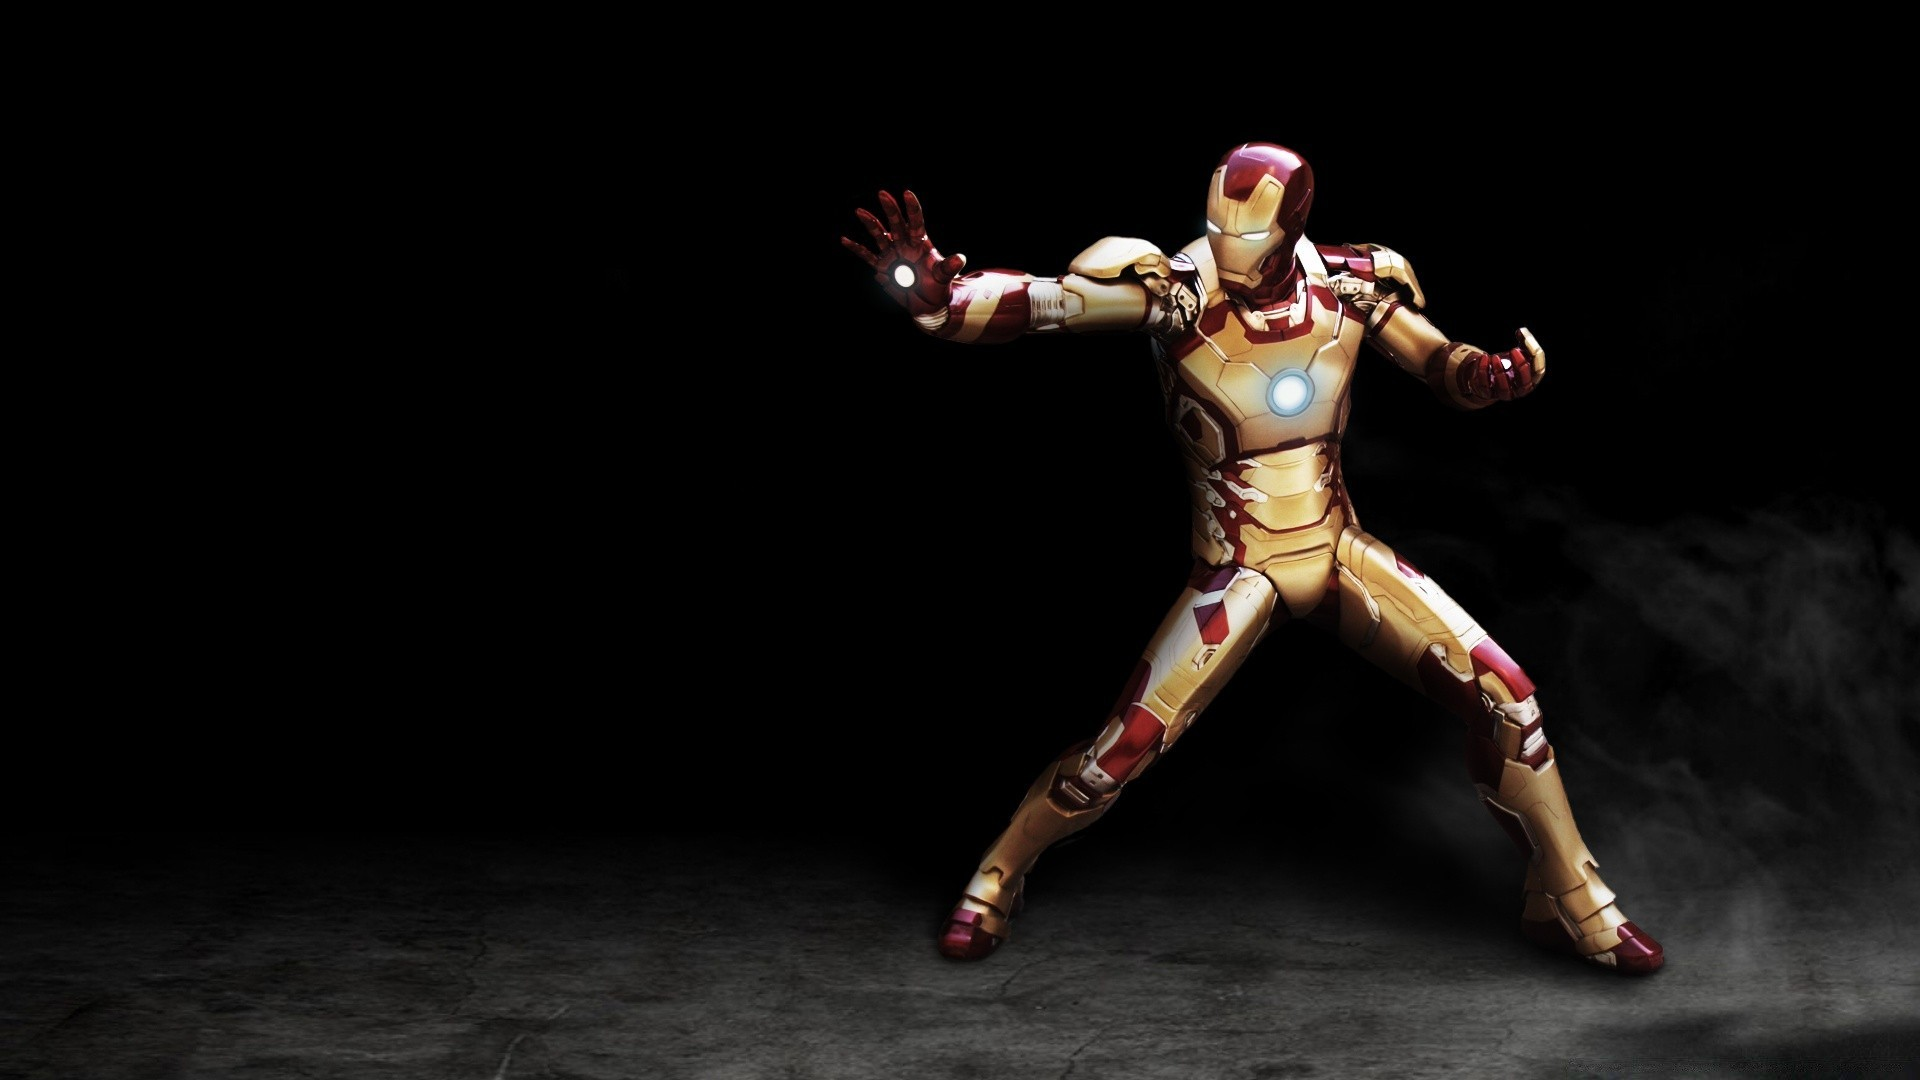 iron man 3 hd. desktop wallpapers for free.